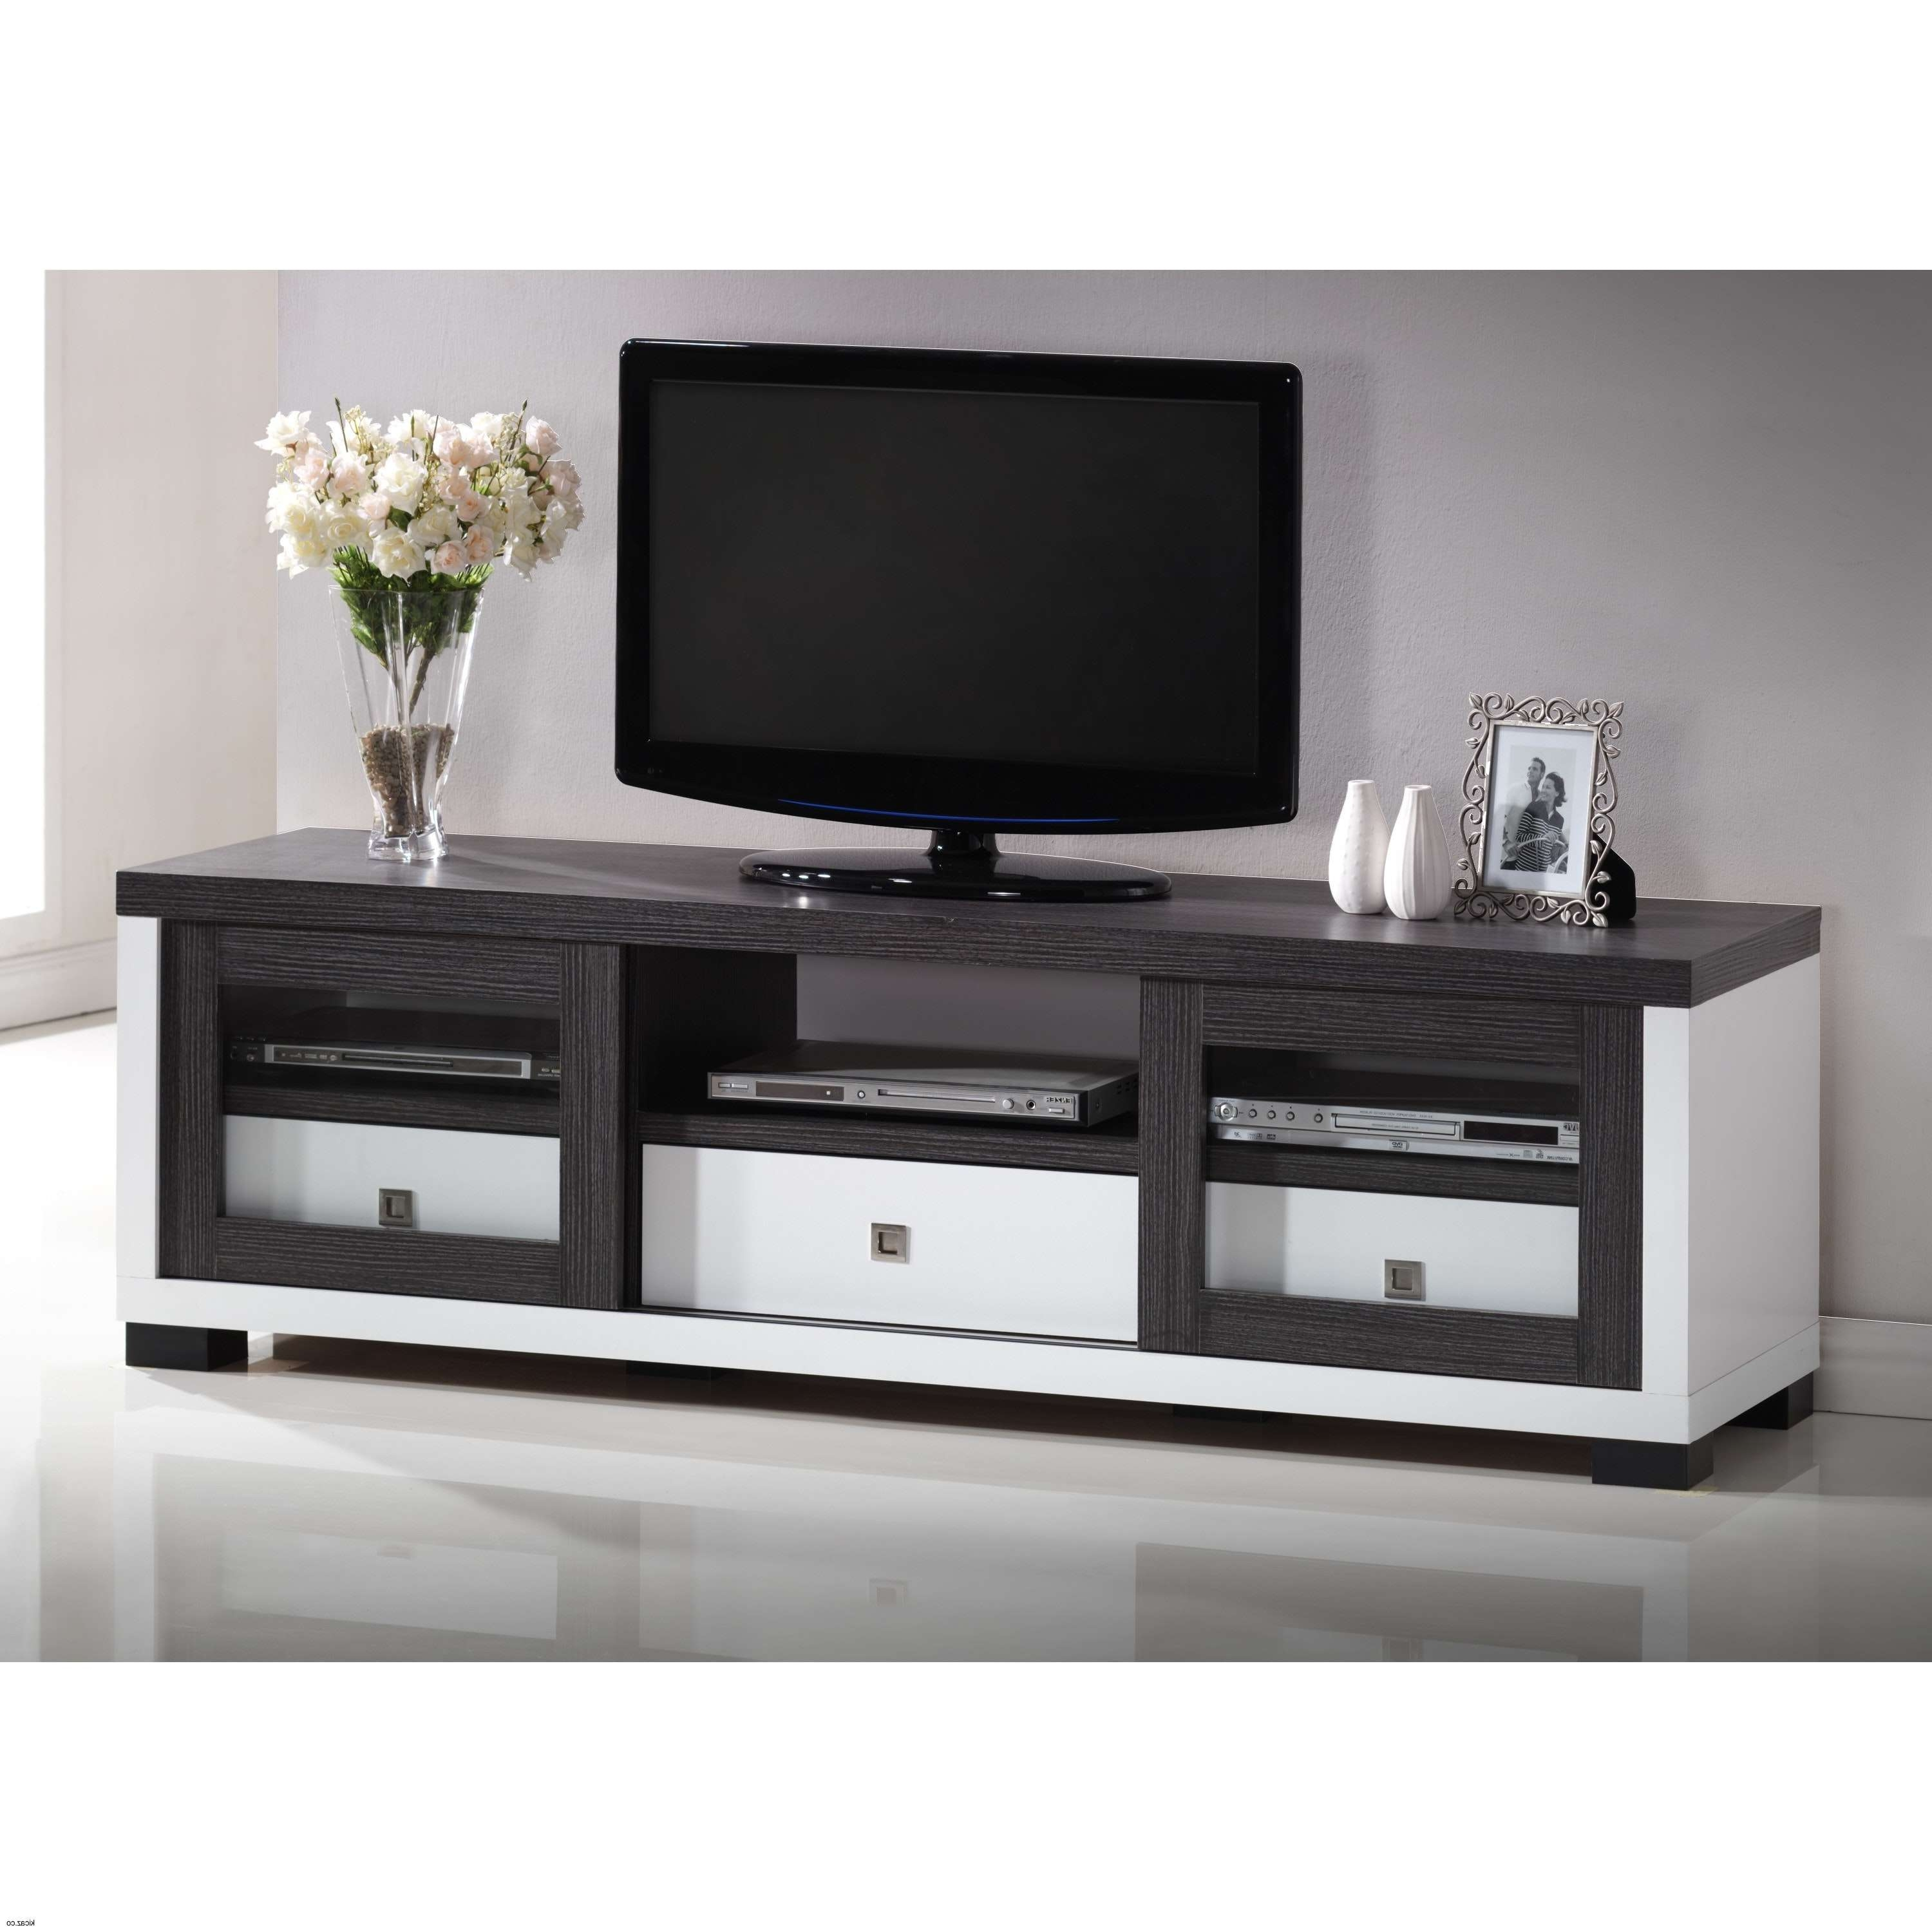 Short Tv Stands Home Design White Stand Entertainment Center | Kicaz In Long White Tv Stands (View 14 of 15)